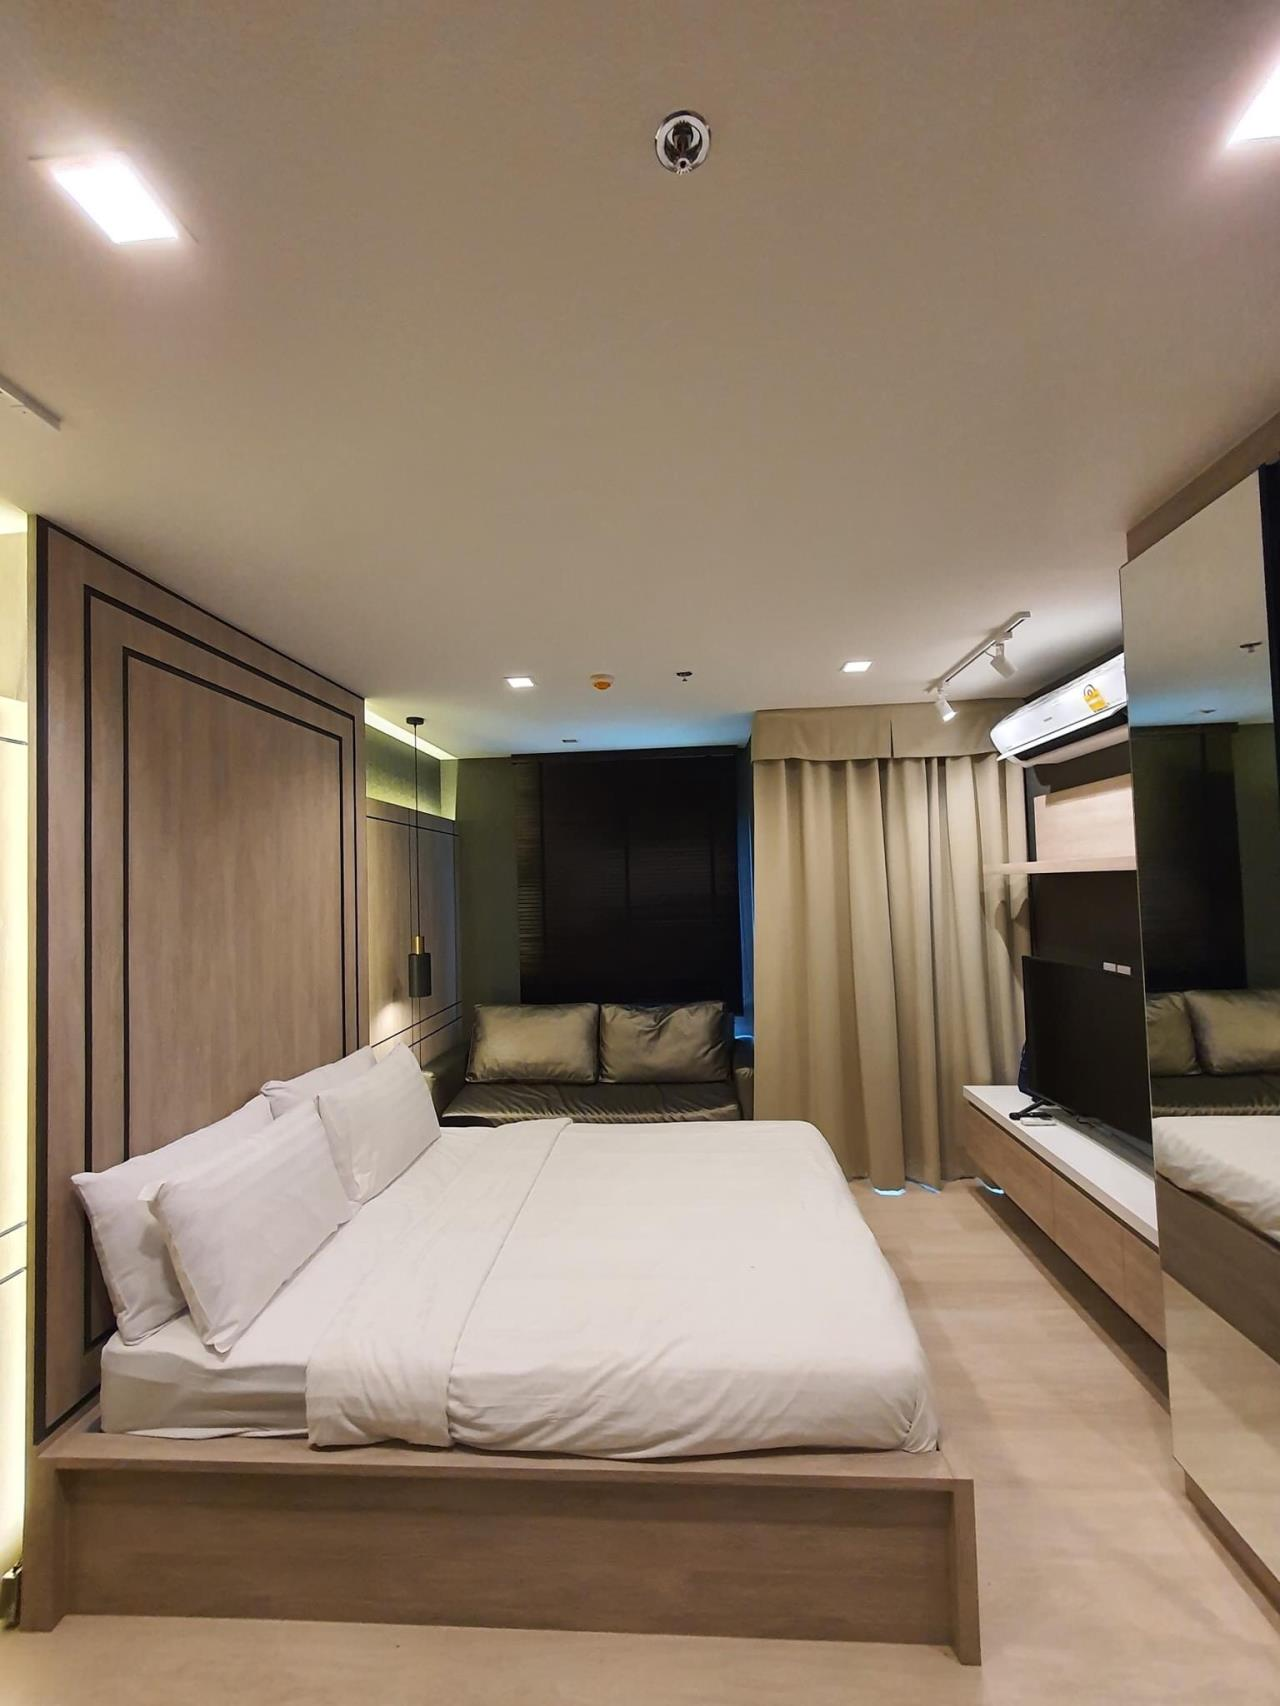 Blueocean property Agency's Condo For Rent – Life @ Wireless 6